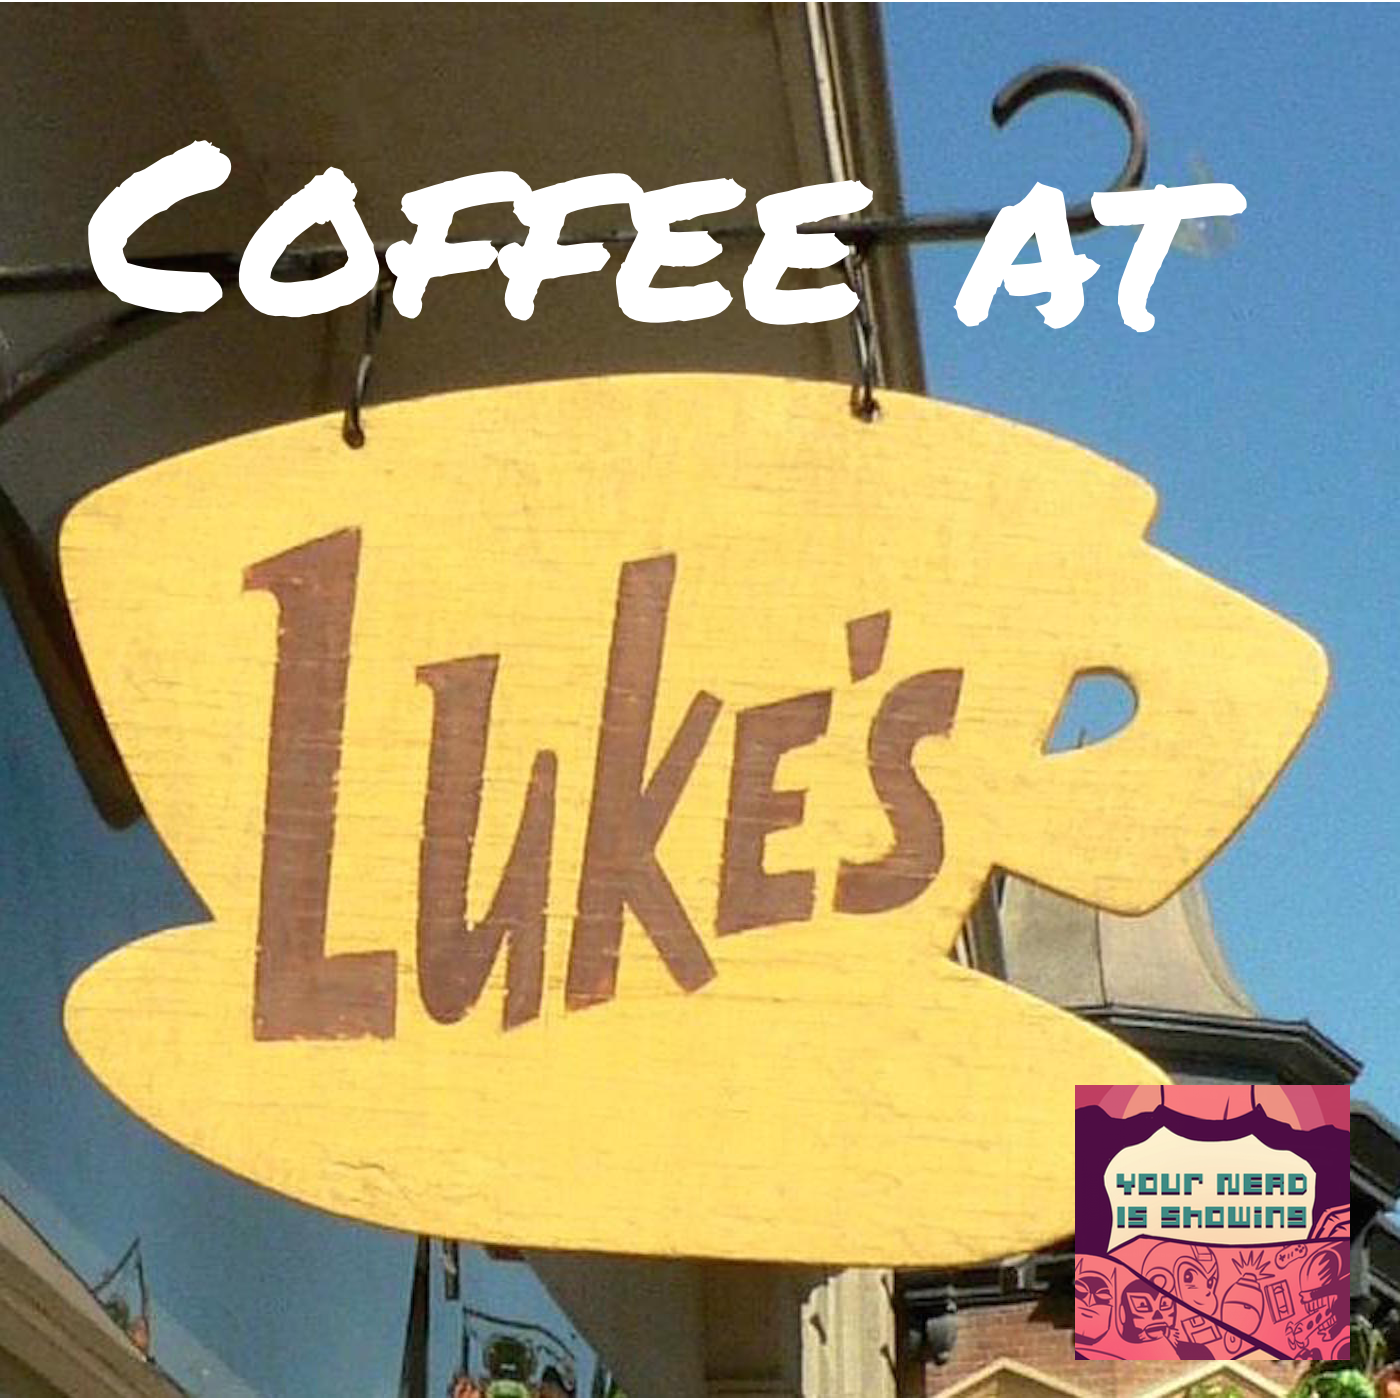 Coffee At Luke's: A Gilmore Girls Podcast | Your Nerd Is Showing Media Network